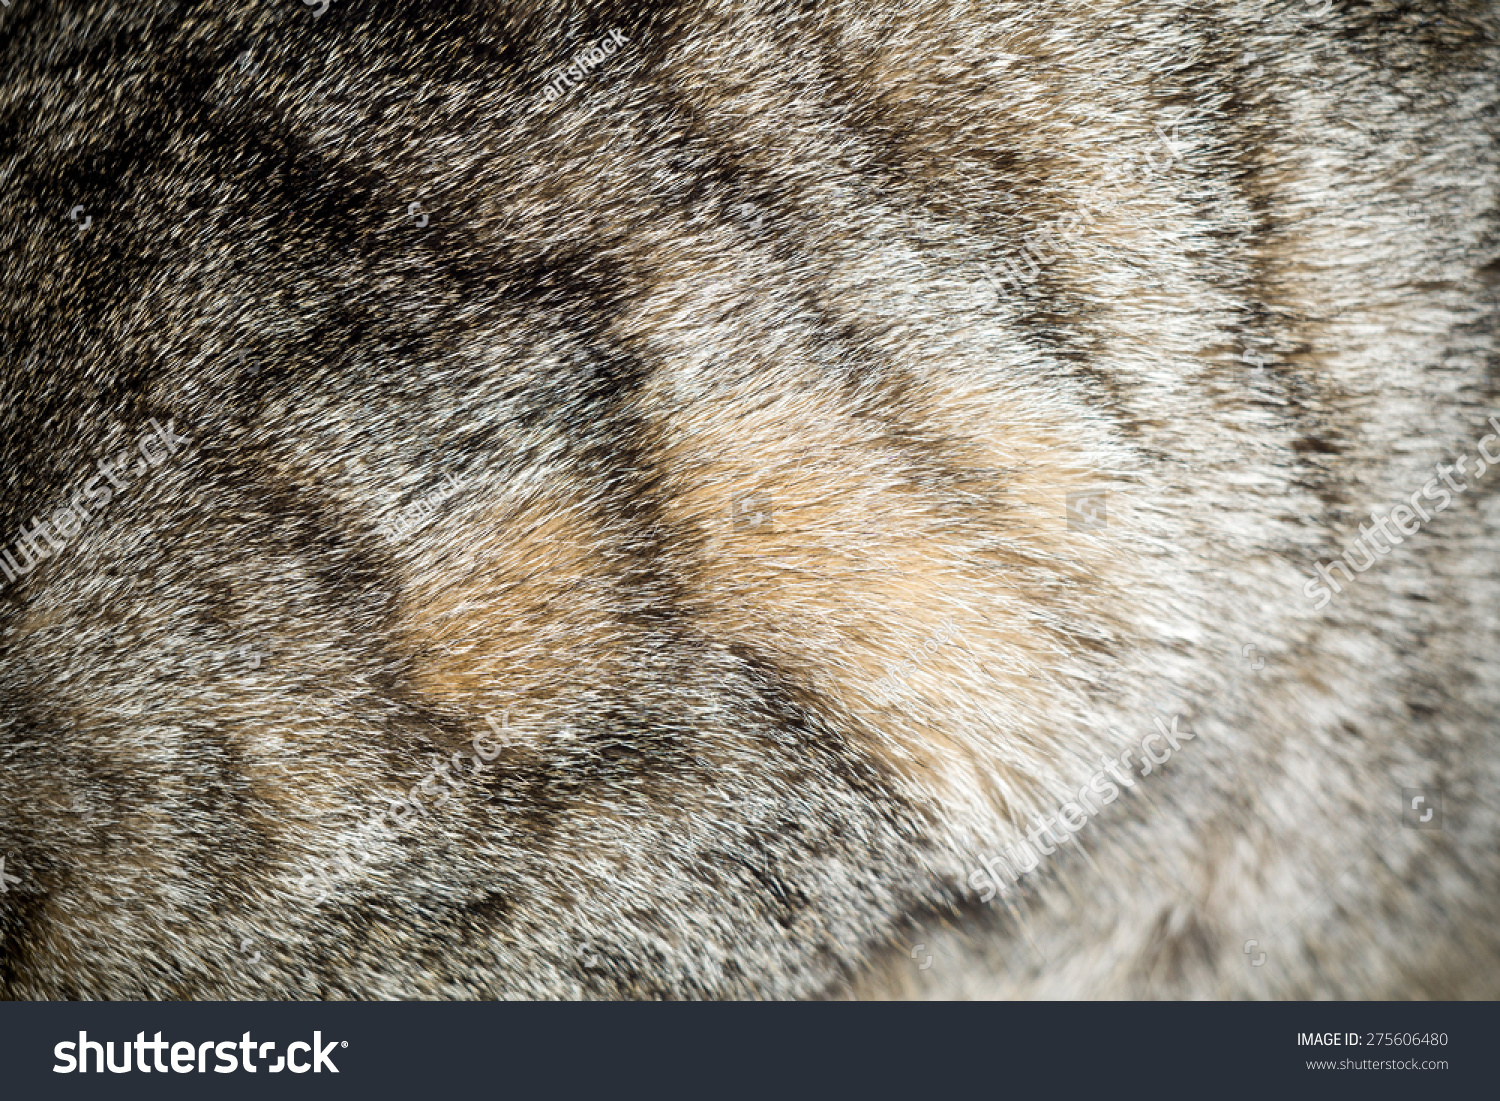 Color of cats fur - Close Up Image Of Cat Fur Grey Color With Black Stripes